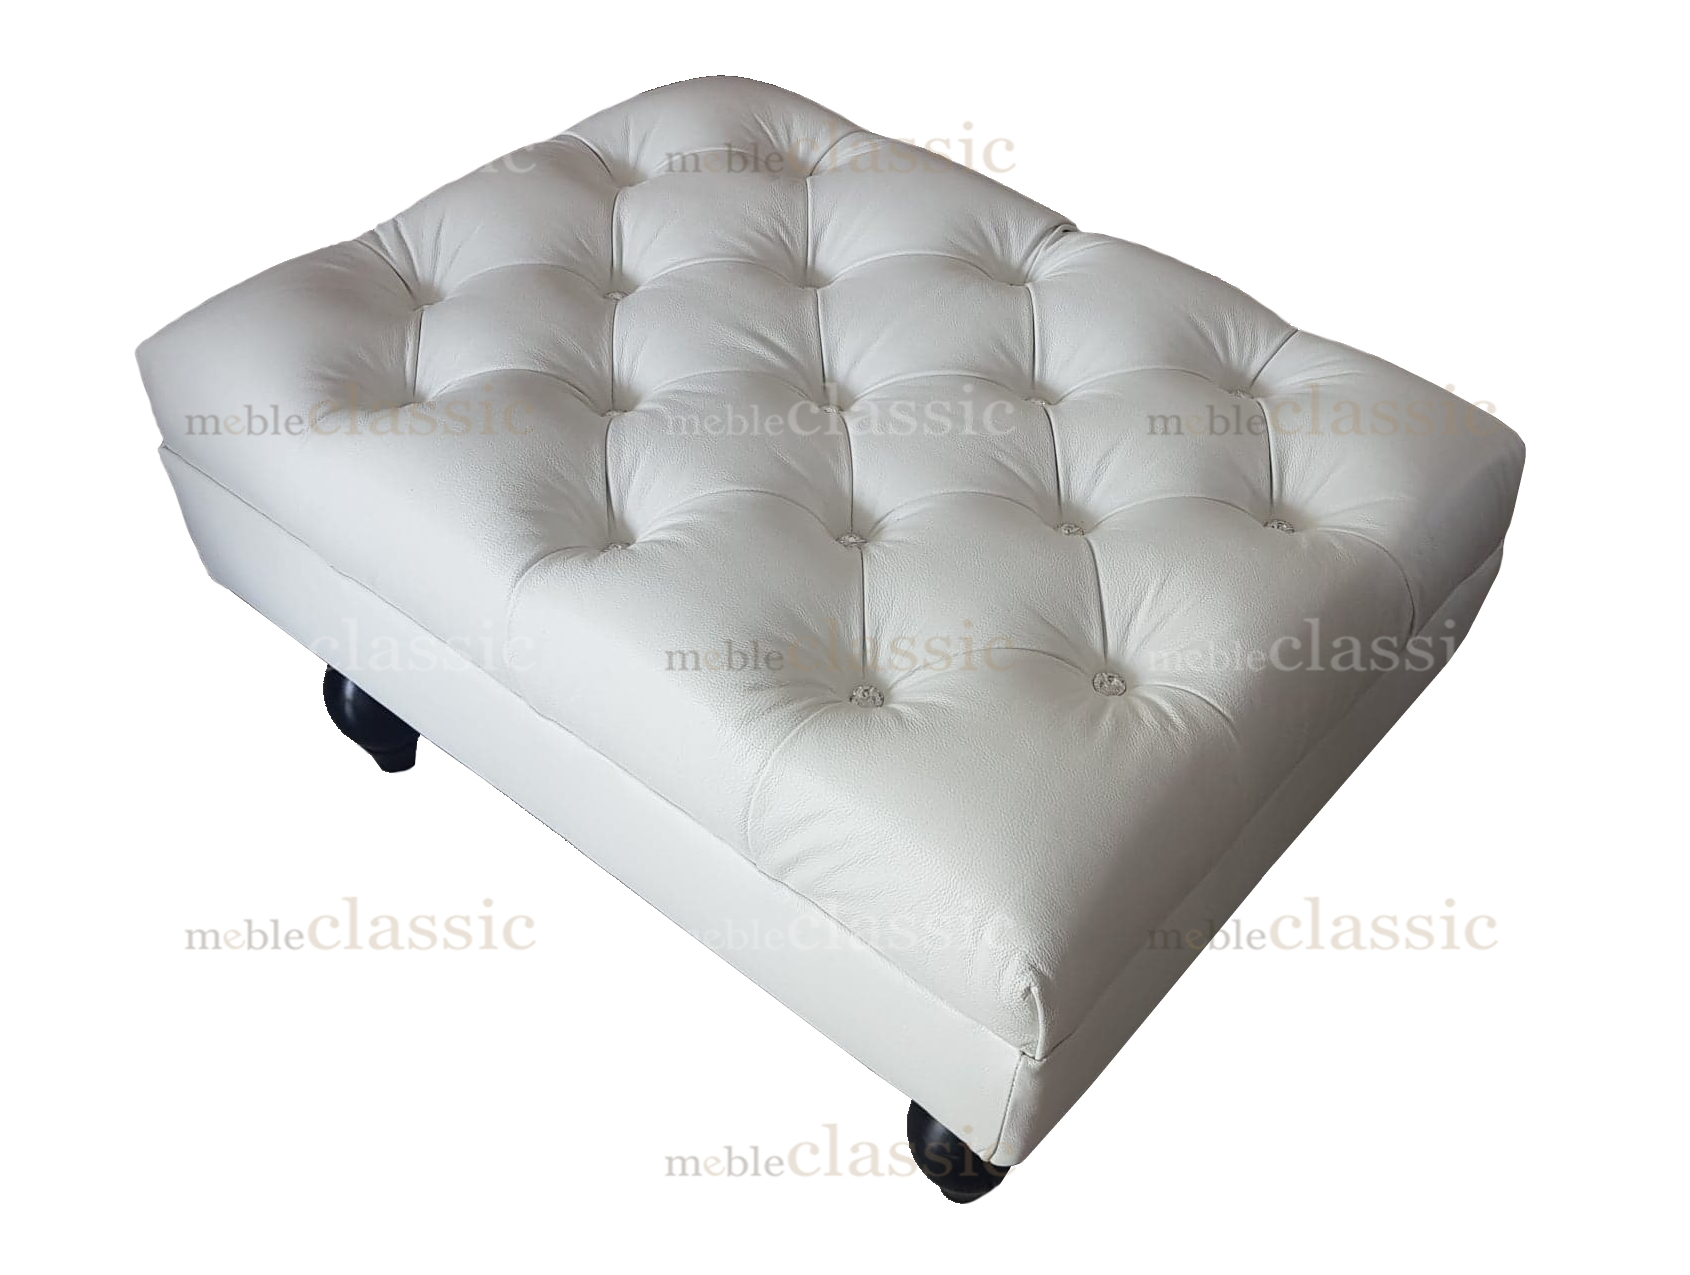 Pamukkale Cheasterfield Foot Rest With Svarowski Crystal And Natural Leather